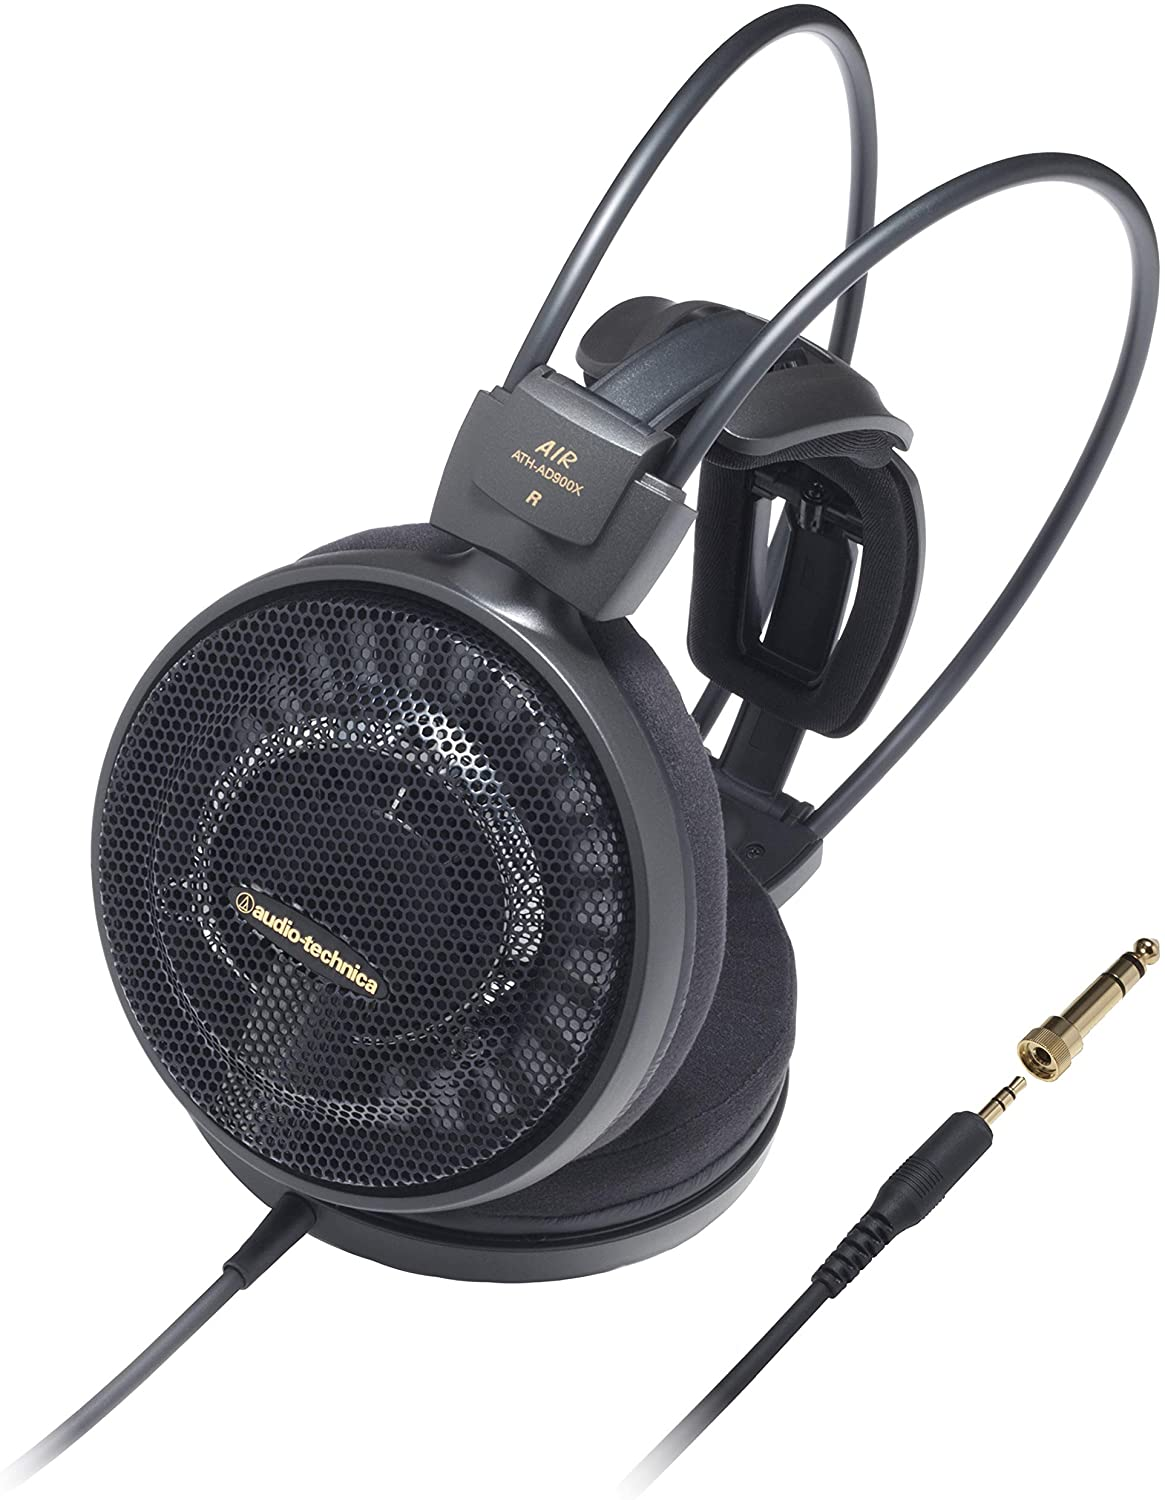 Audio Technica ATH-AD900X Open-Back Headphones